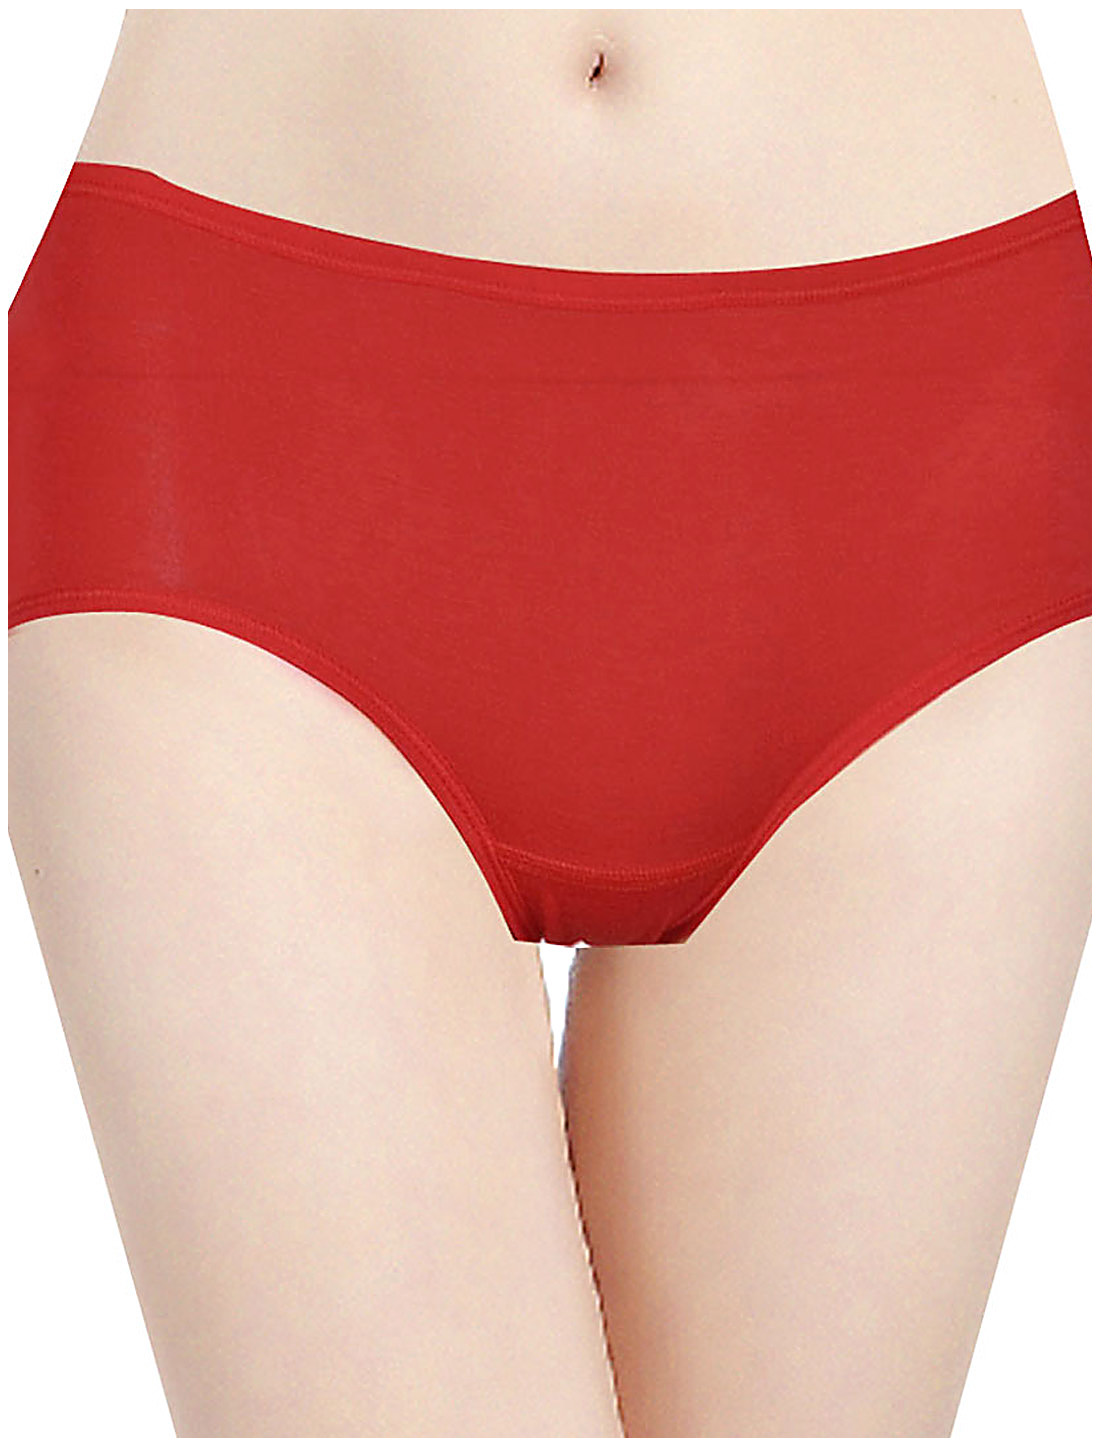 Ladies Solid Red Waist Briefs Underwear Panties Thongs XS